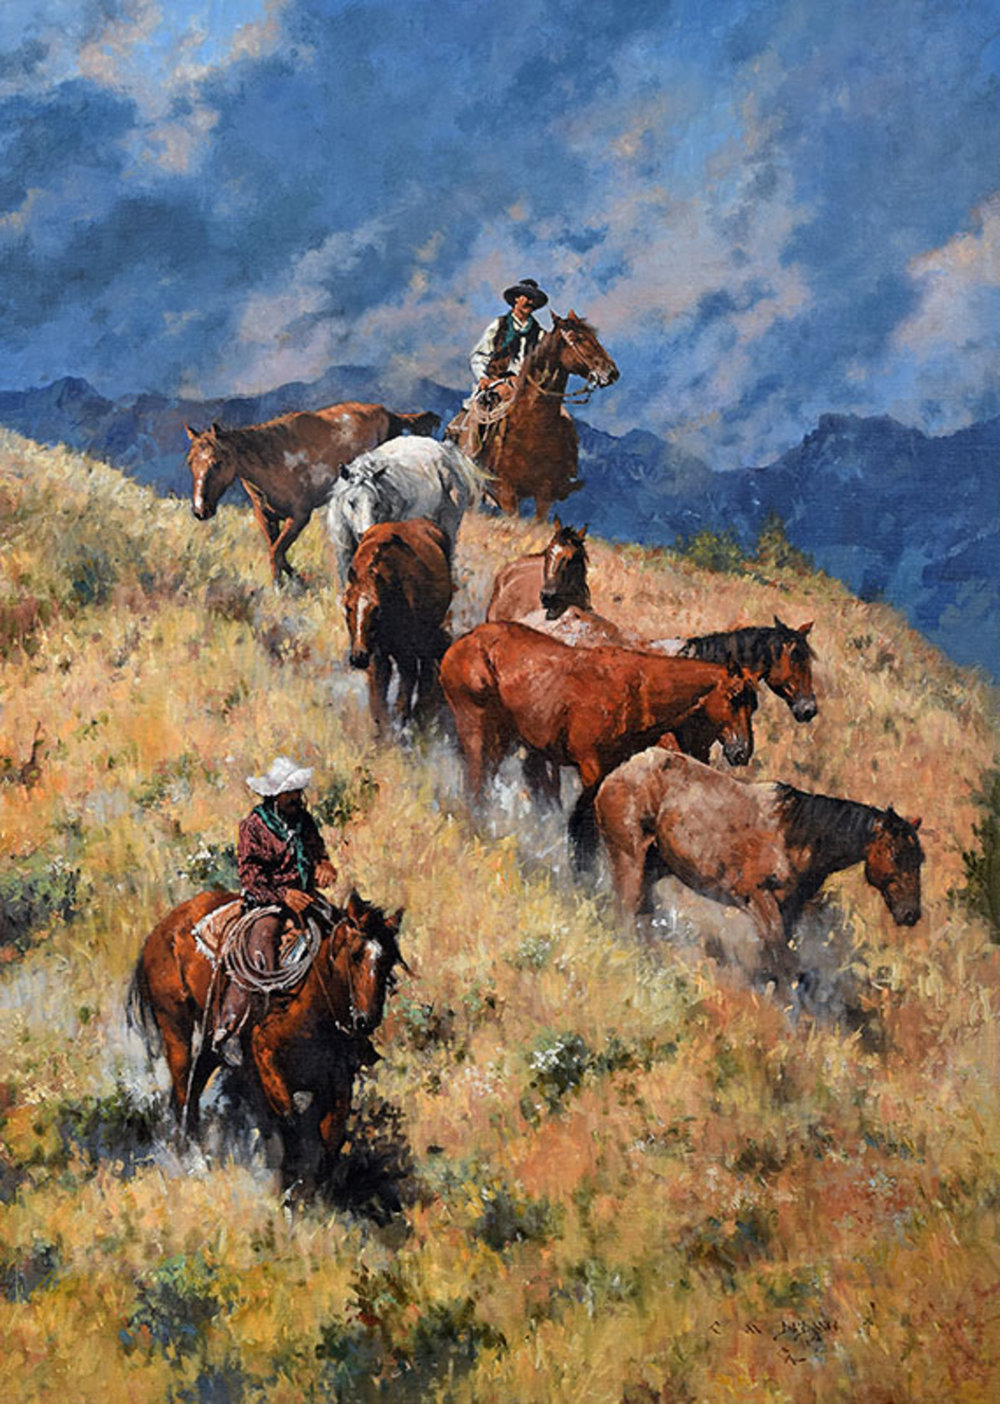 """REMUDA ROUNDUP"" - oil on linen - 42"" x 30"" SOLD at   Coeur d'Alene Art Auction  , July 28, 2018, Reno, NV"